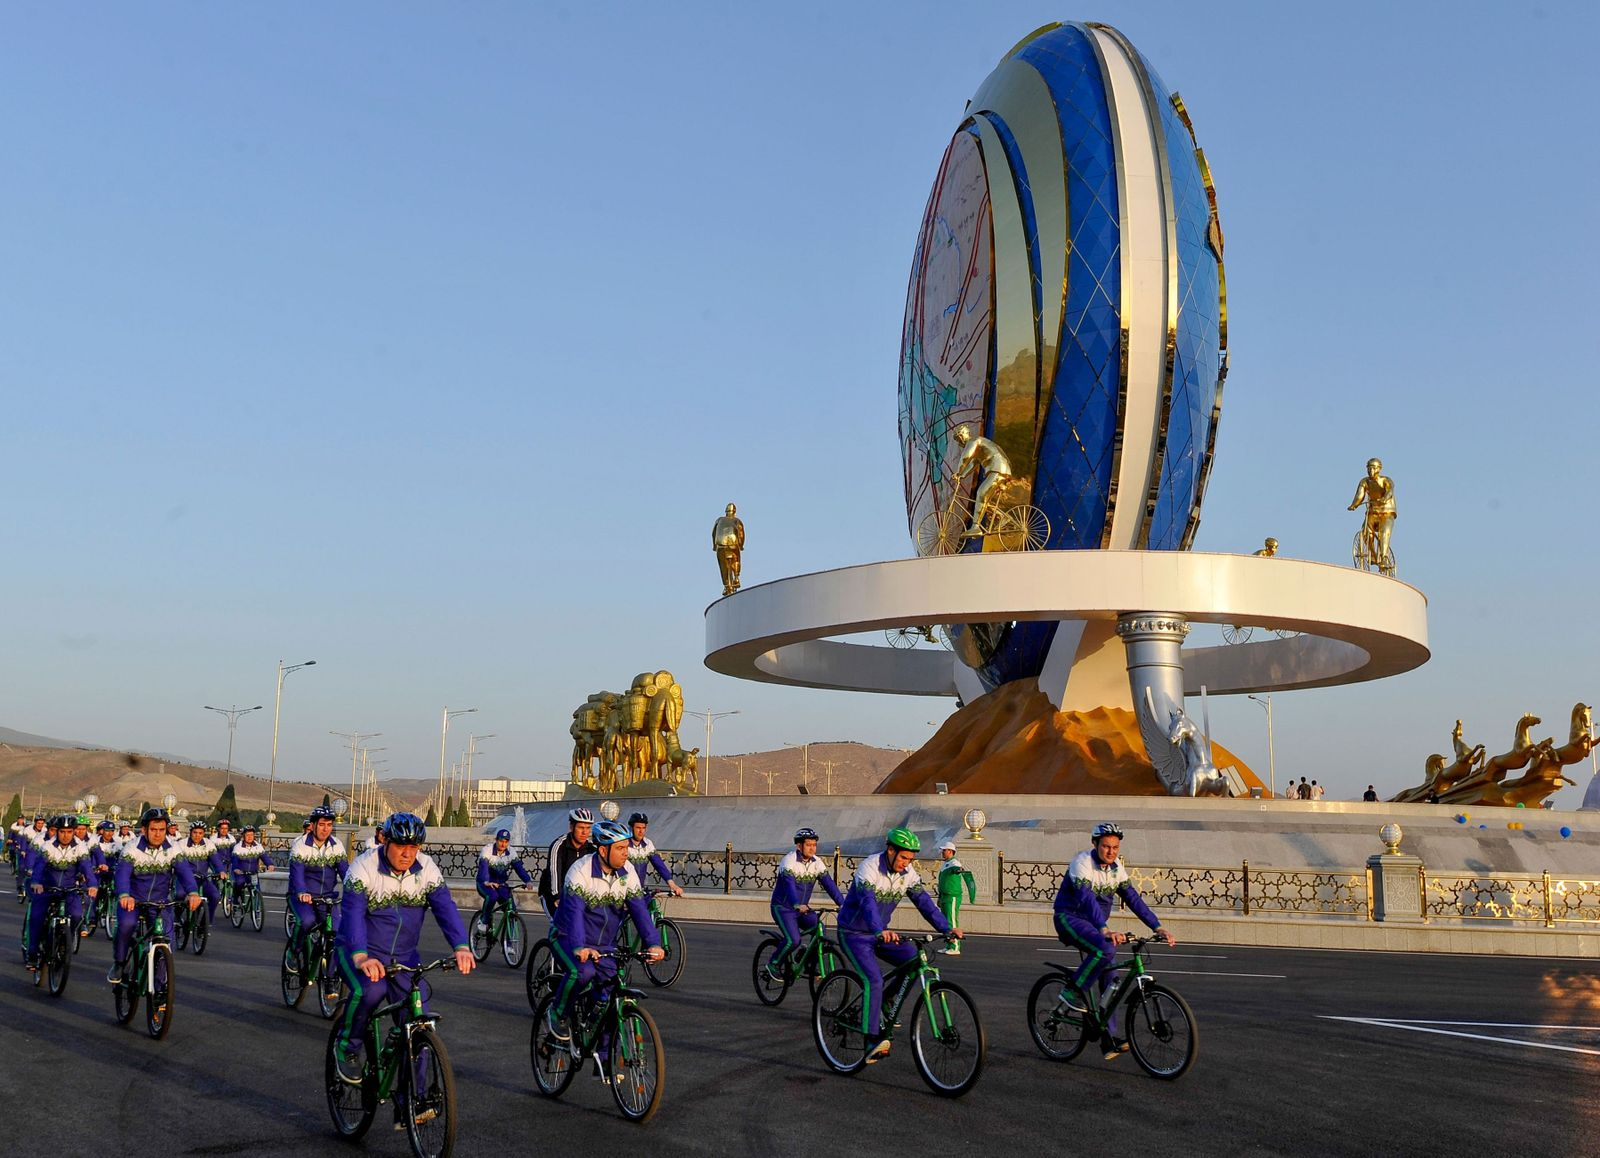 TOPSHOT-TURKMENISTAN-CYCLE-MONUMENTS